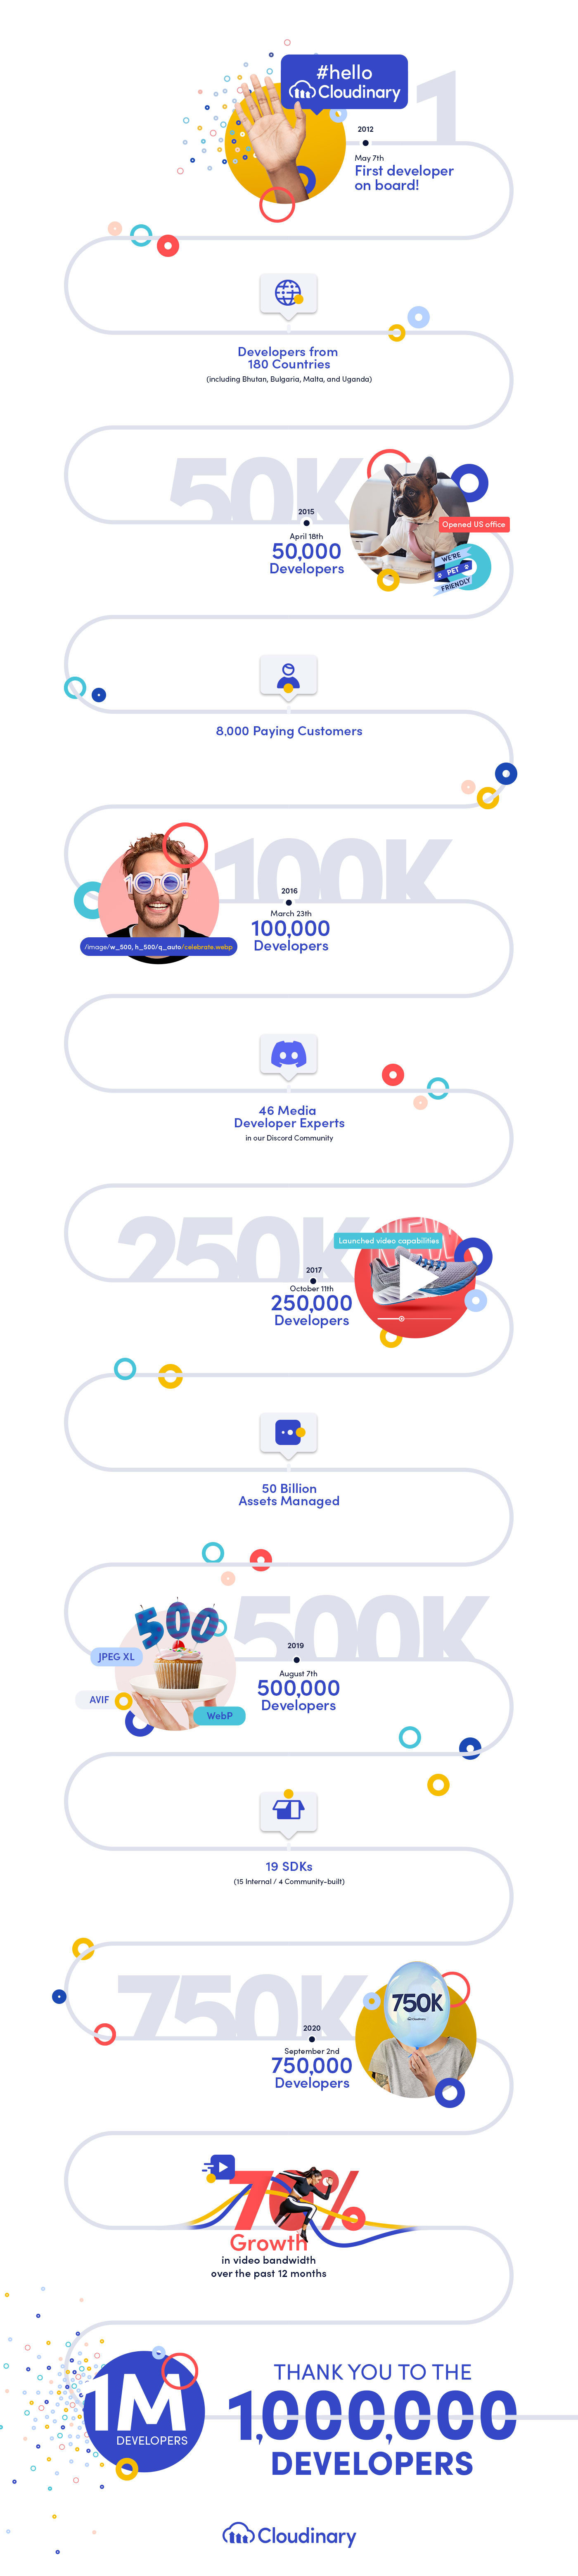 One Million Developers on Cloudinary Infographic